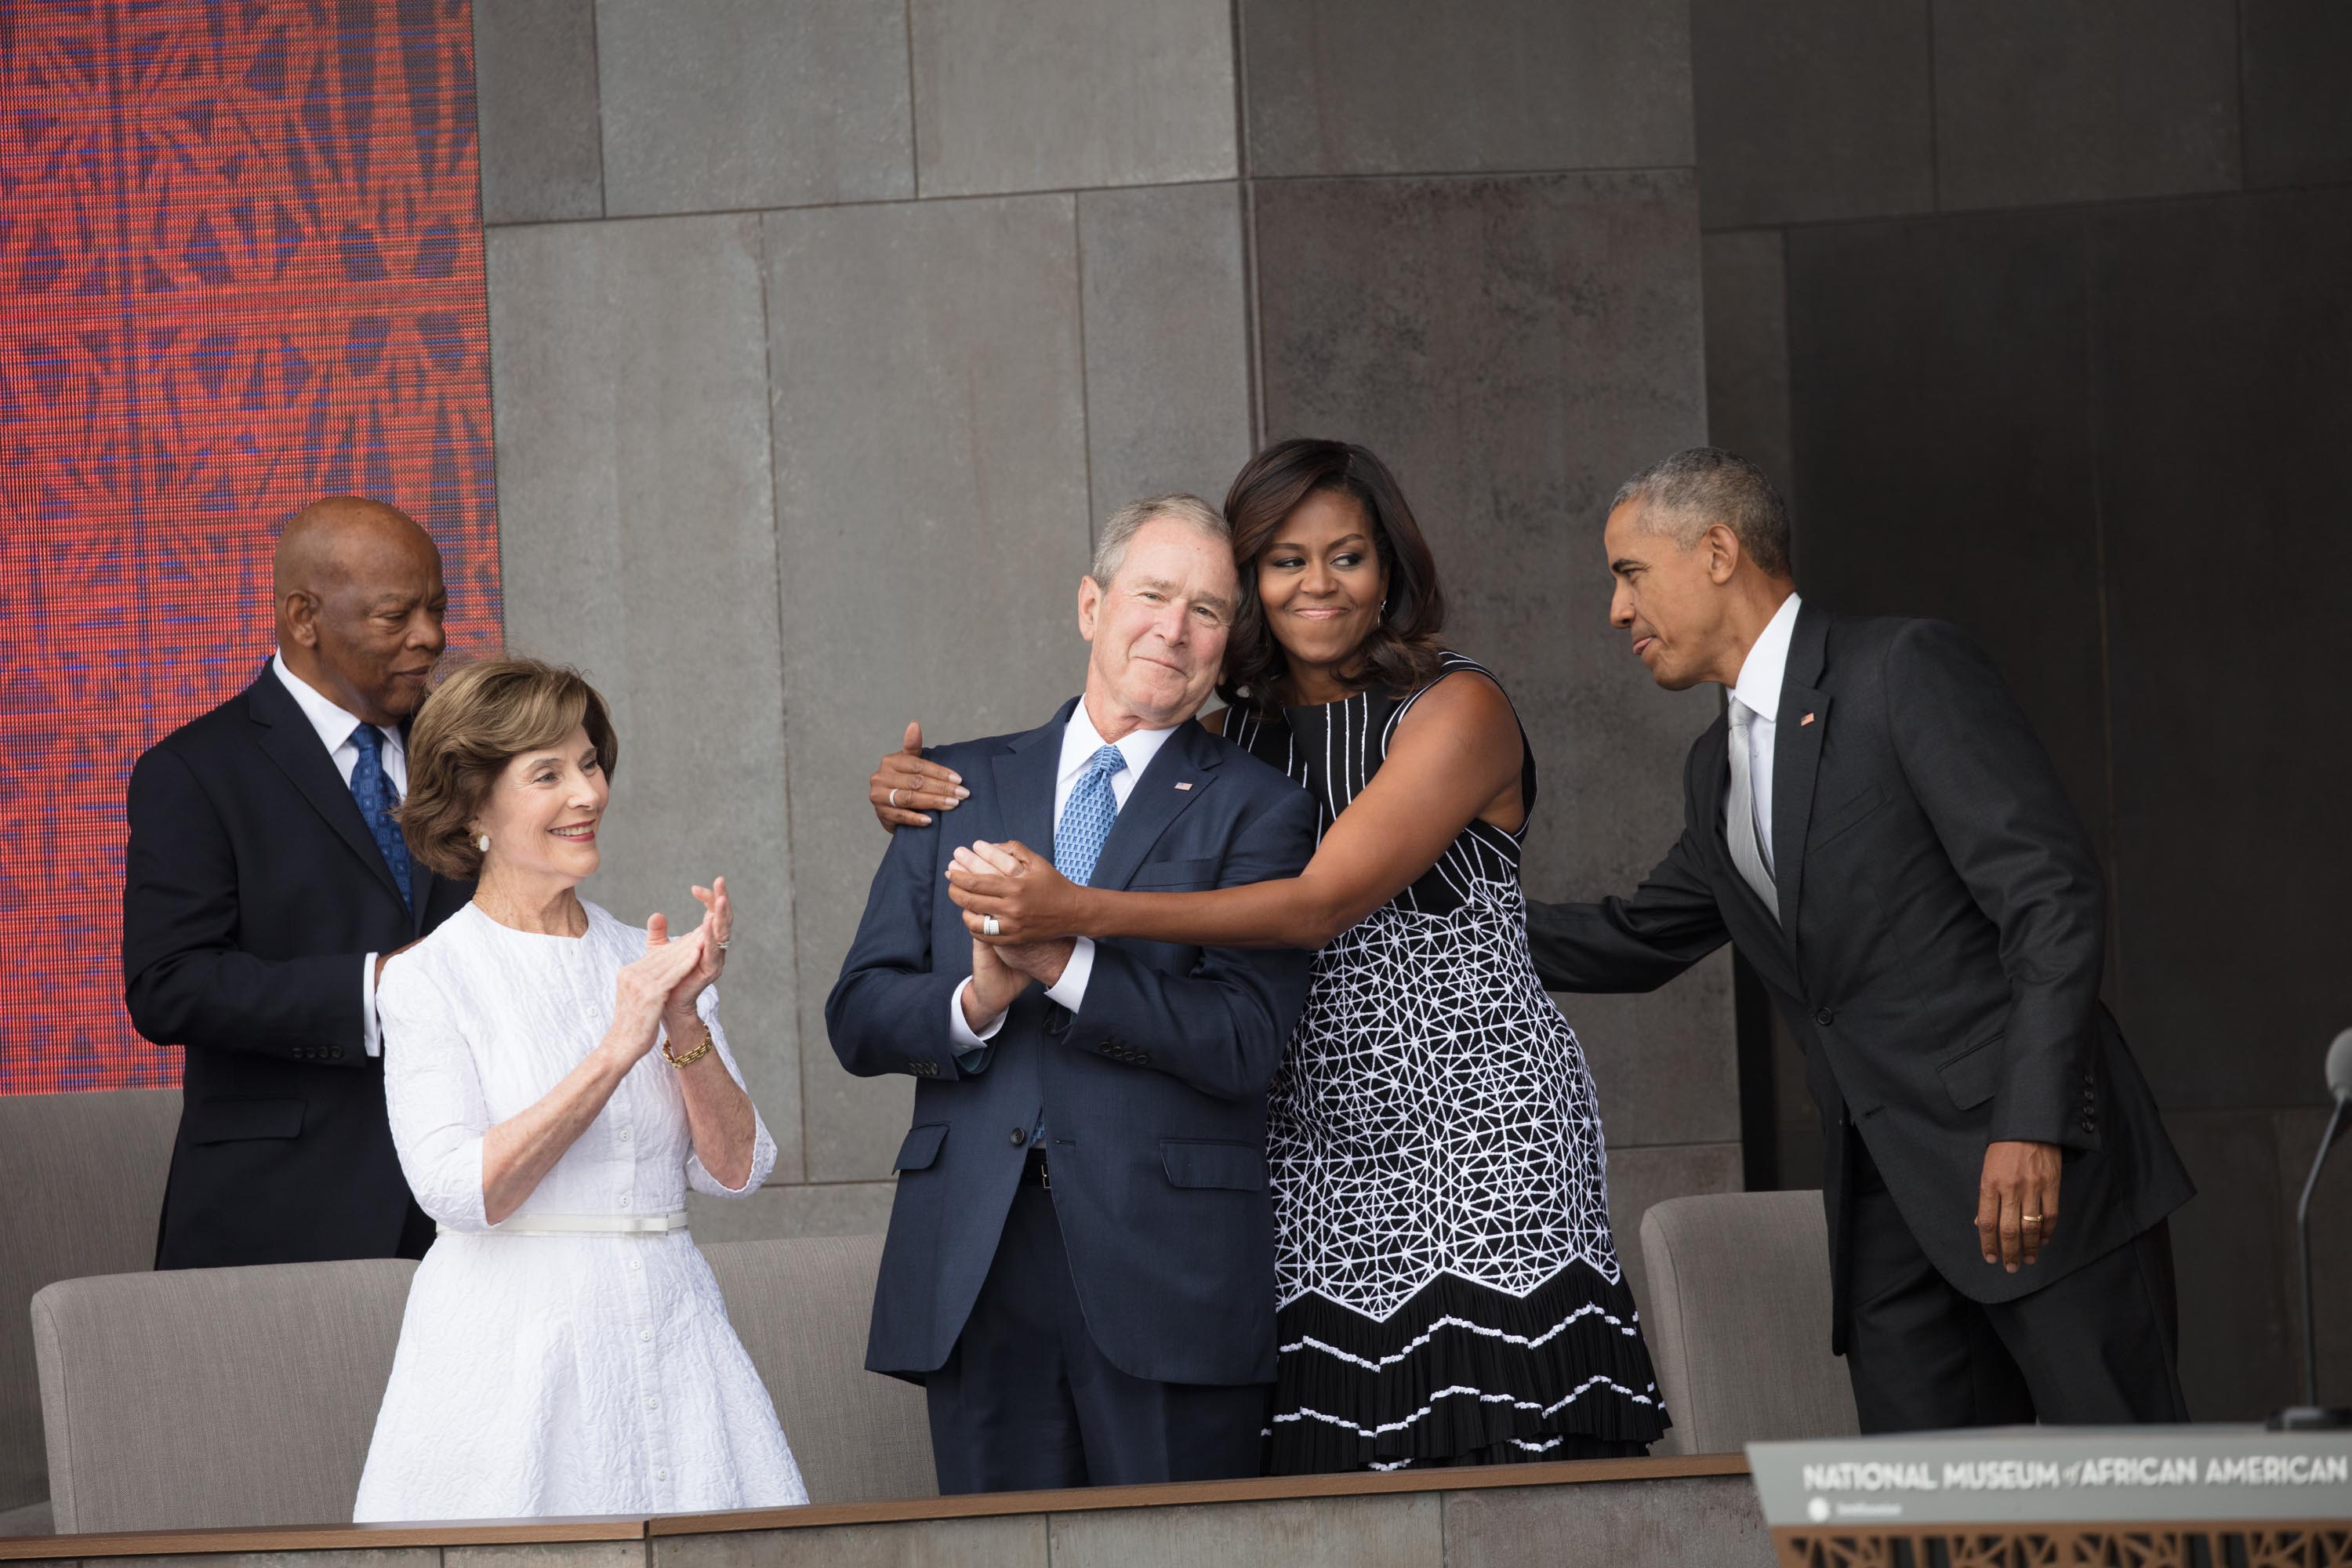 Bush says he was 'shocked' by people's reactions to his friendship with Michelle Obama